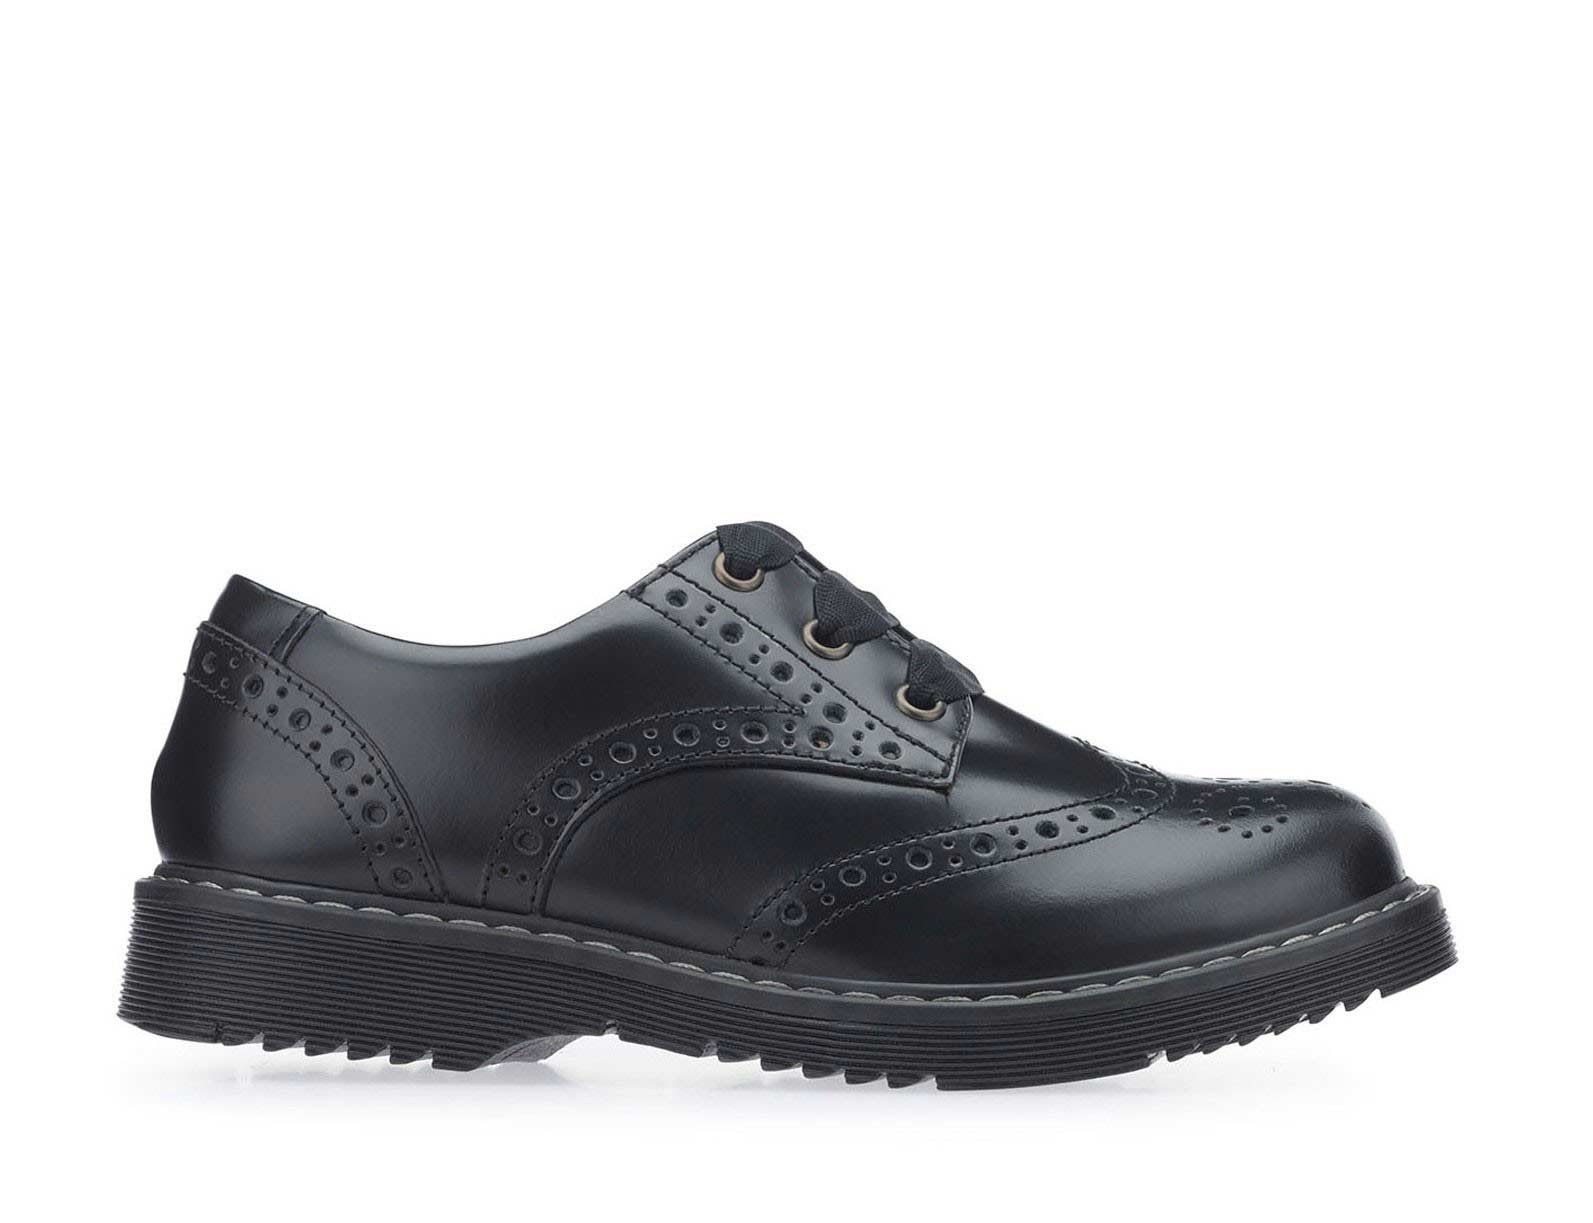 Size 8 School Shoes for Girls & Boys